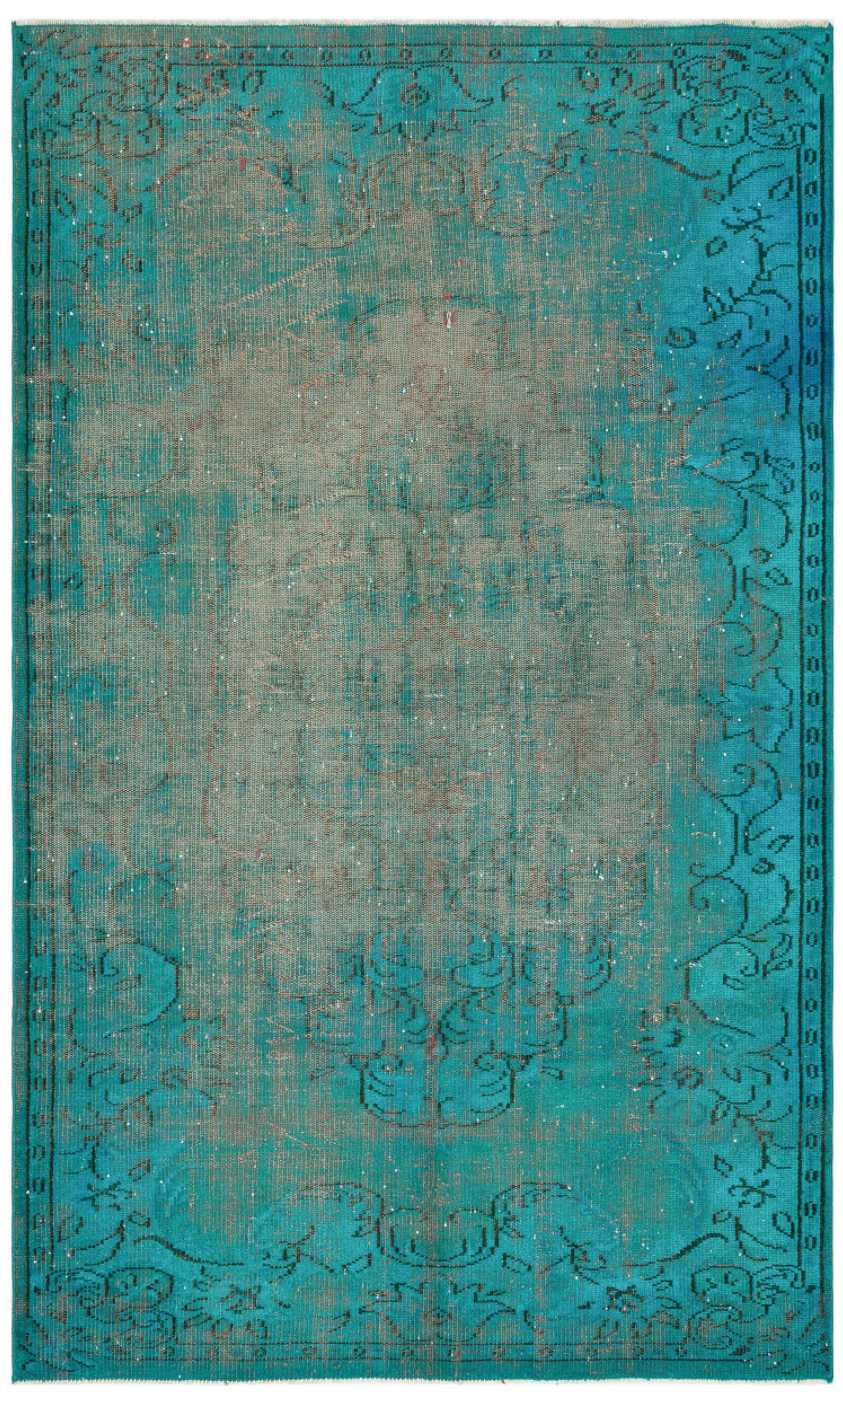 Retro Design Turquoise Over Dyed Vintage Rug 5'5'' x 8'11'' ft 166 x 273 cm